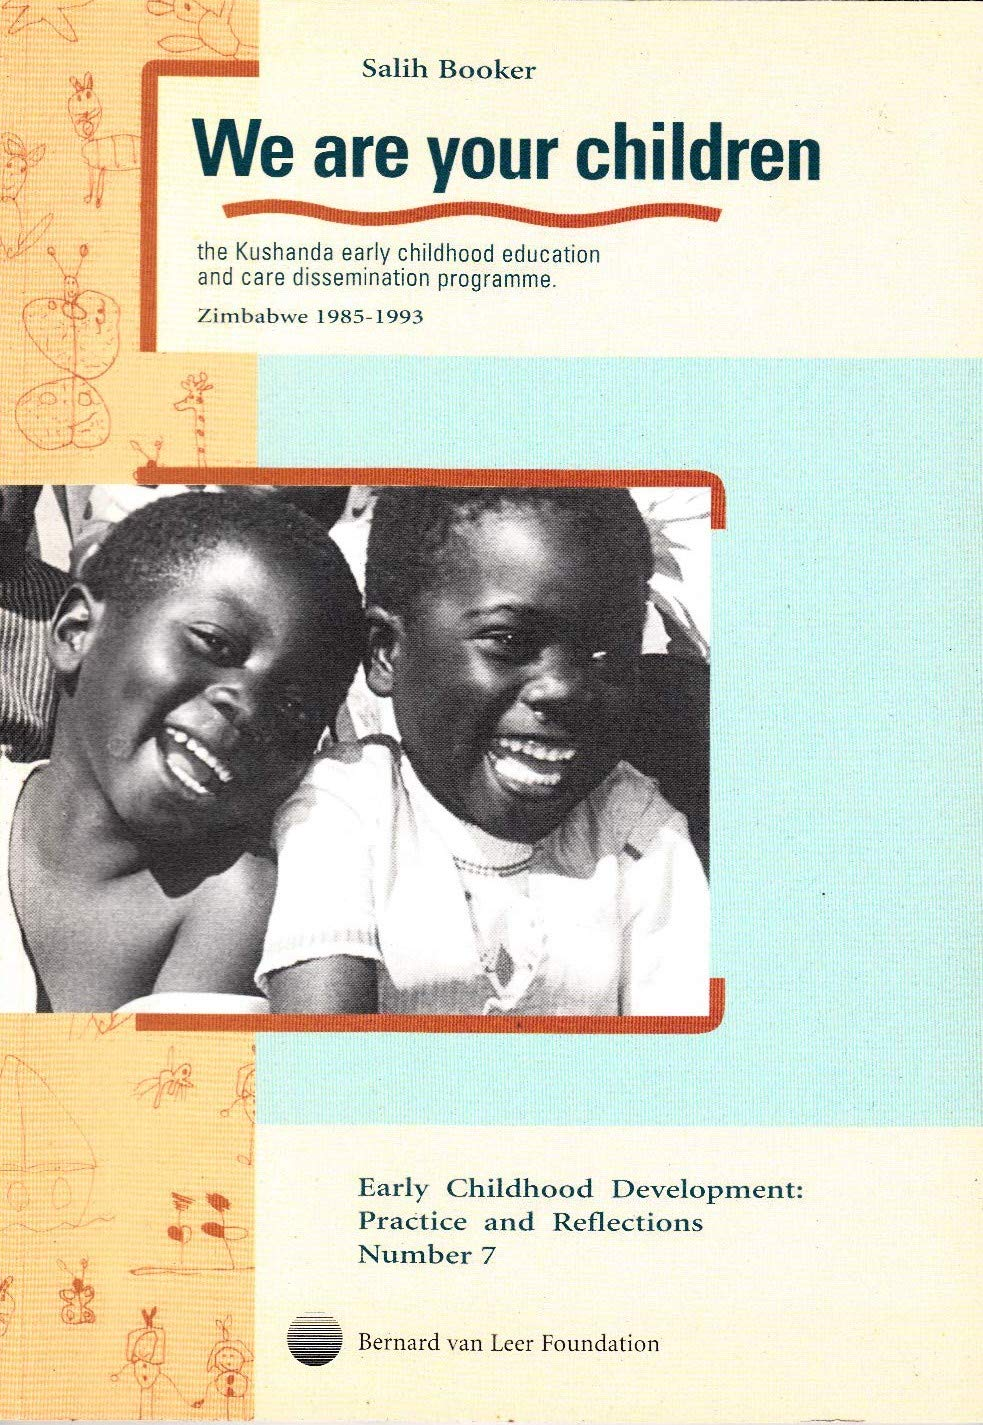 We Are Your Children: The Kushanda Early Childhood Education and Care Dissemination Programme, Zimbabwe 1985-1993